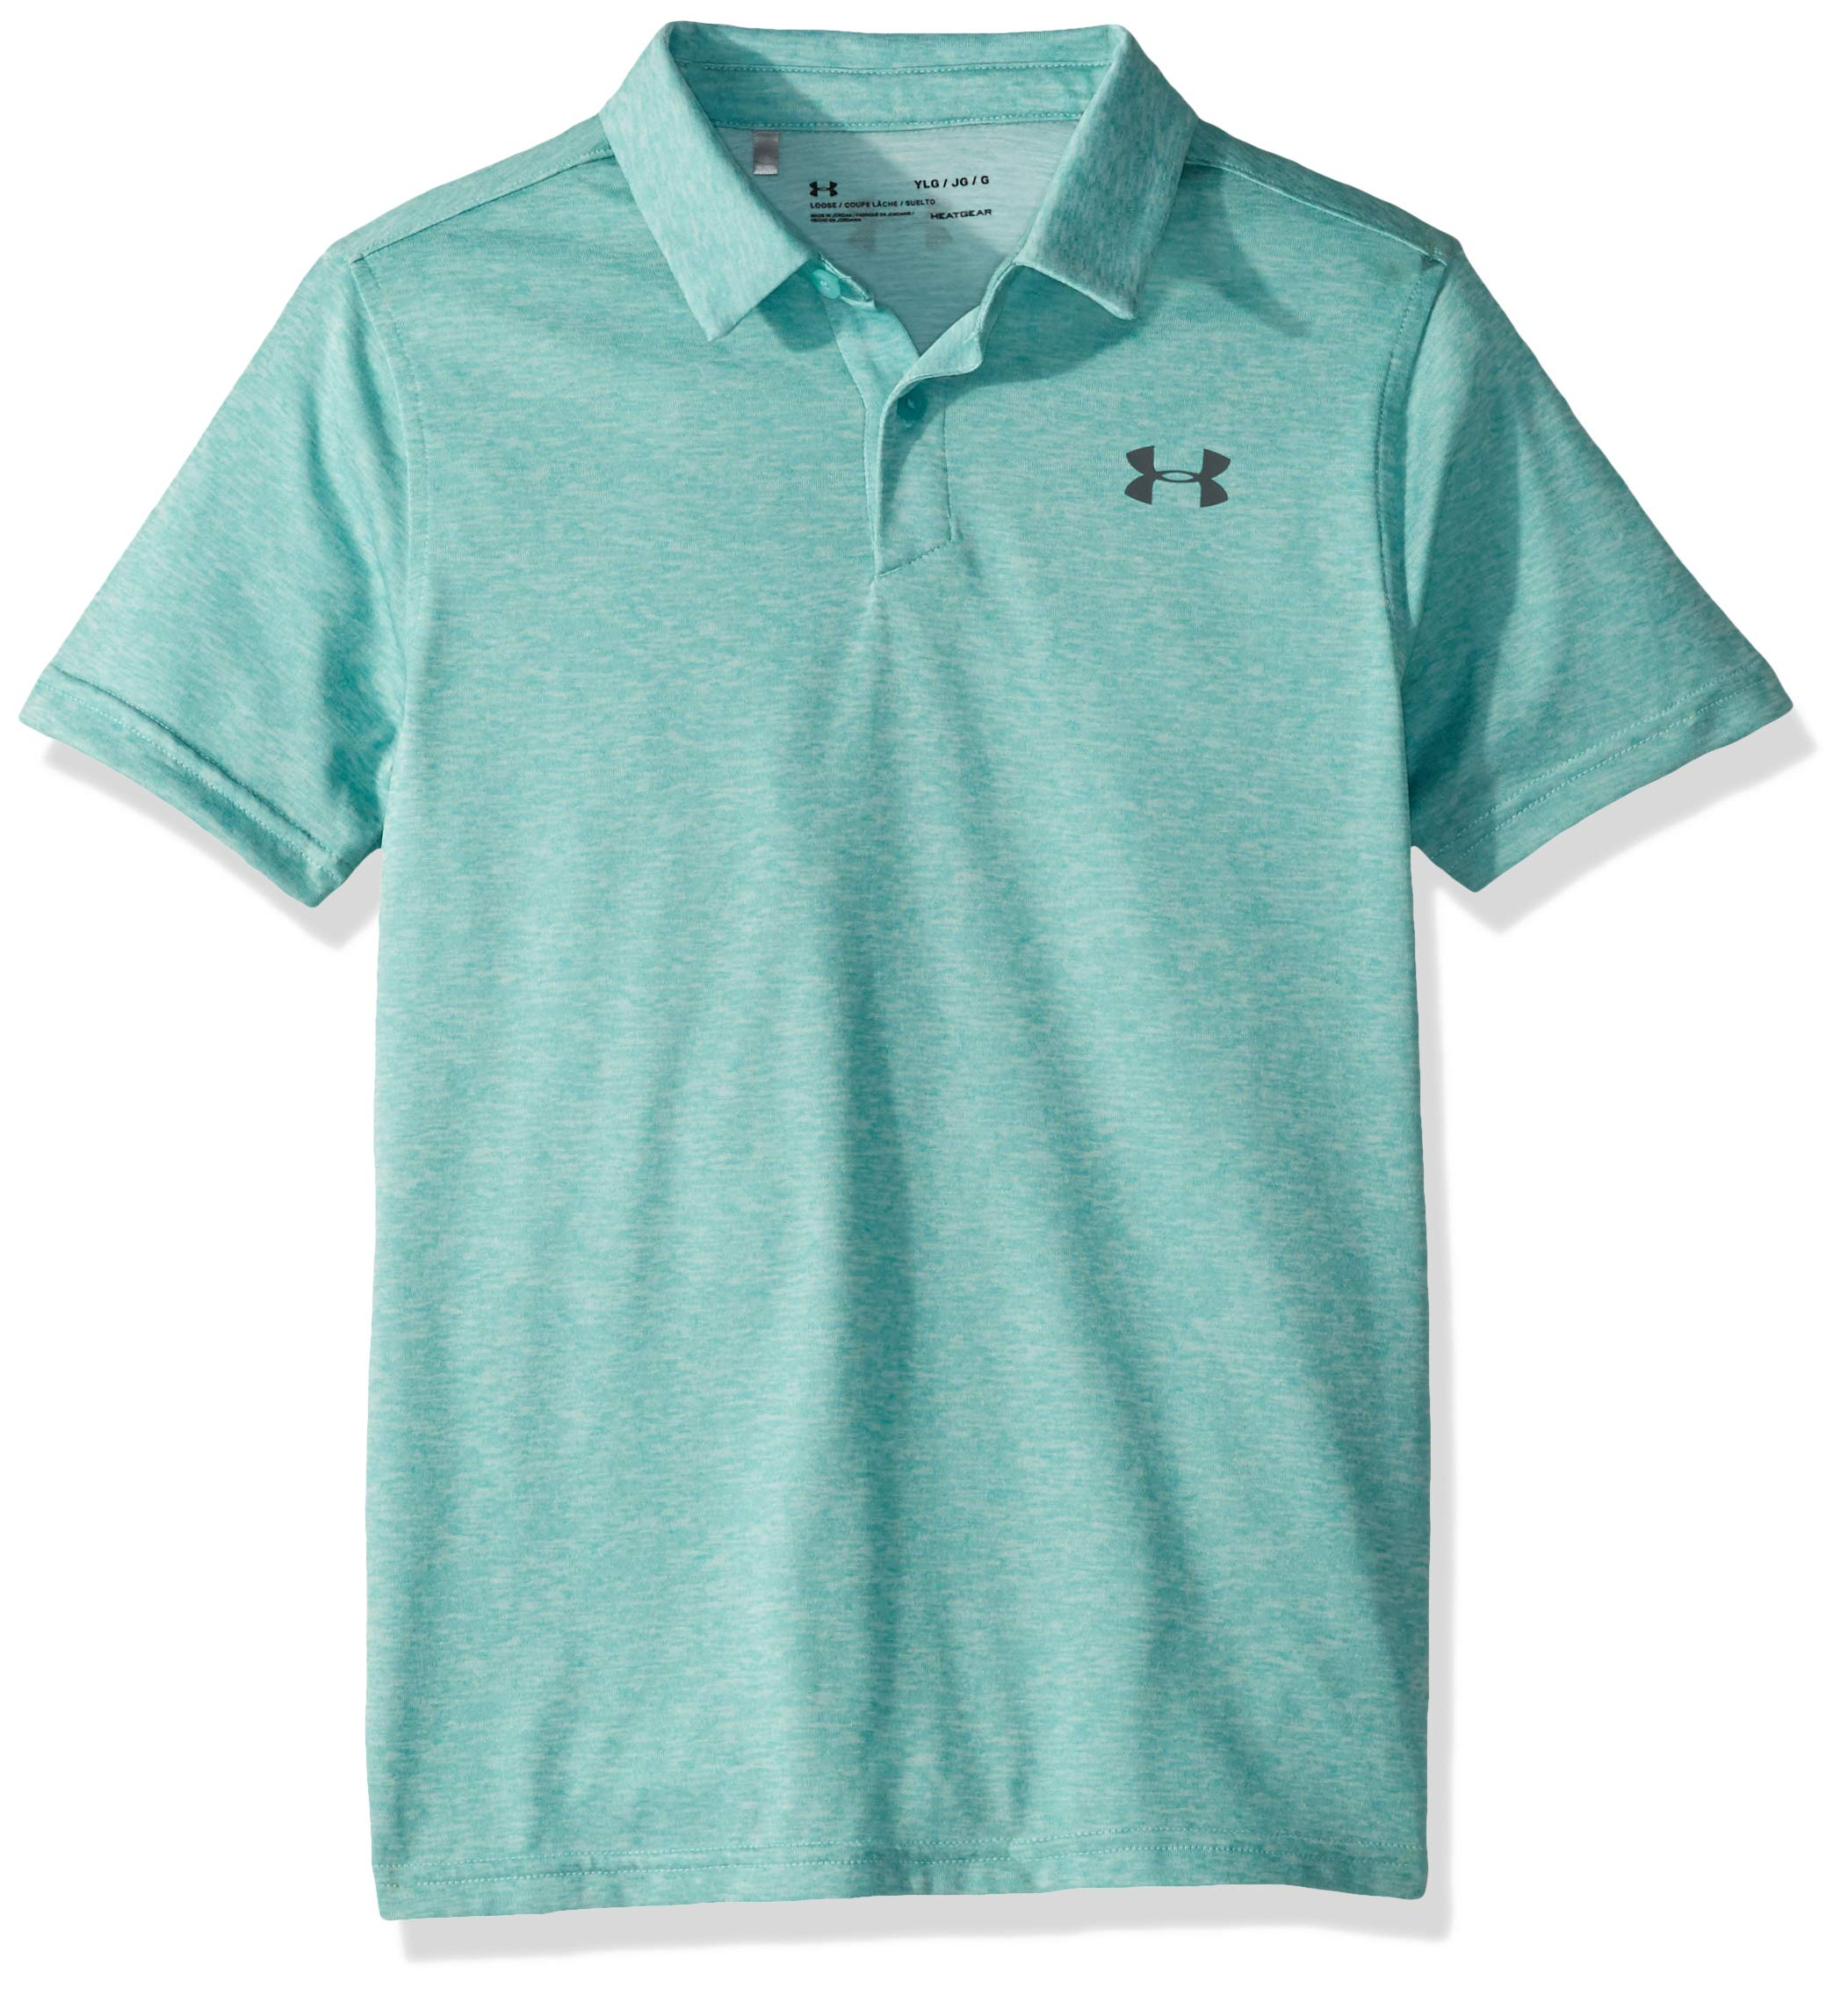 Under Armour Tour Tips Polo, Azure Teal Light Heather//Pitch, Youth Medium by Under Armour